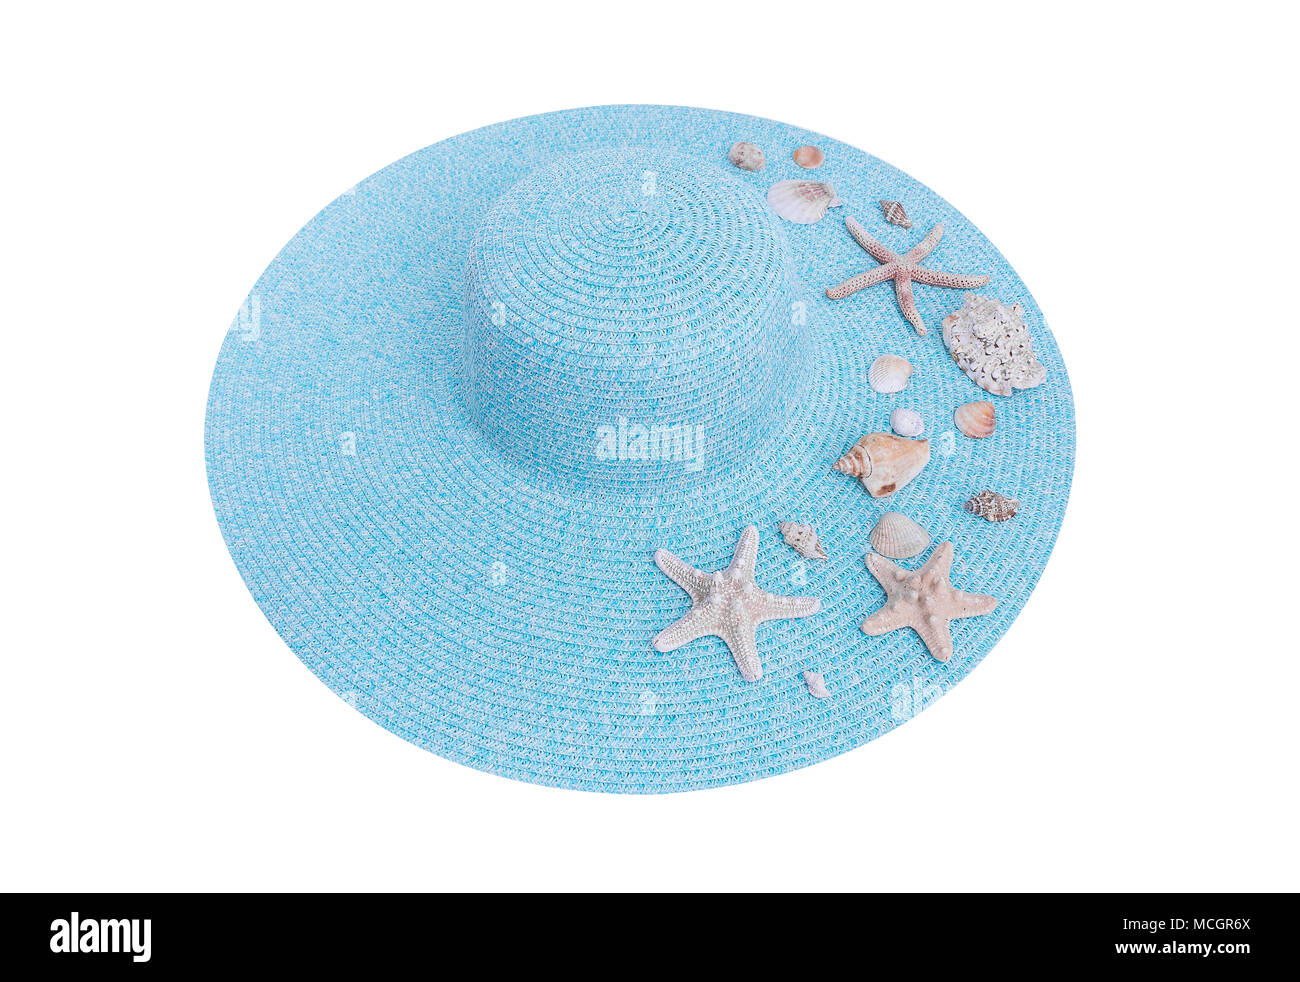 Starfish and seashells on a hat. - Stock Image